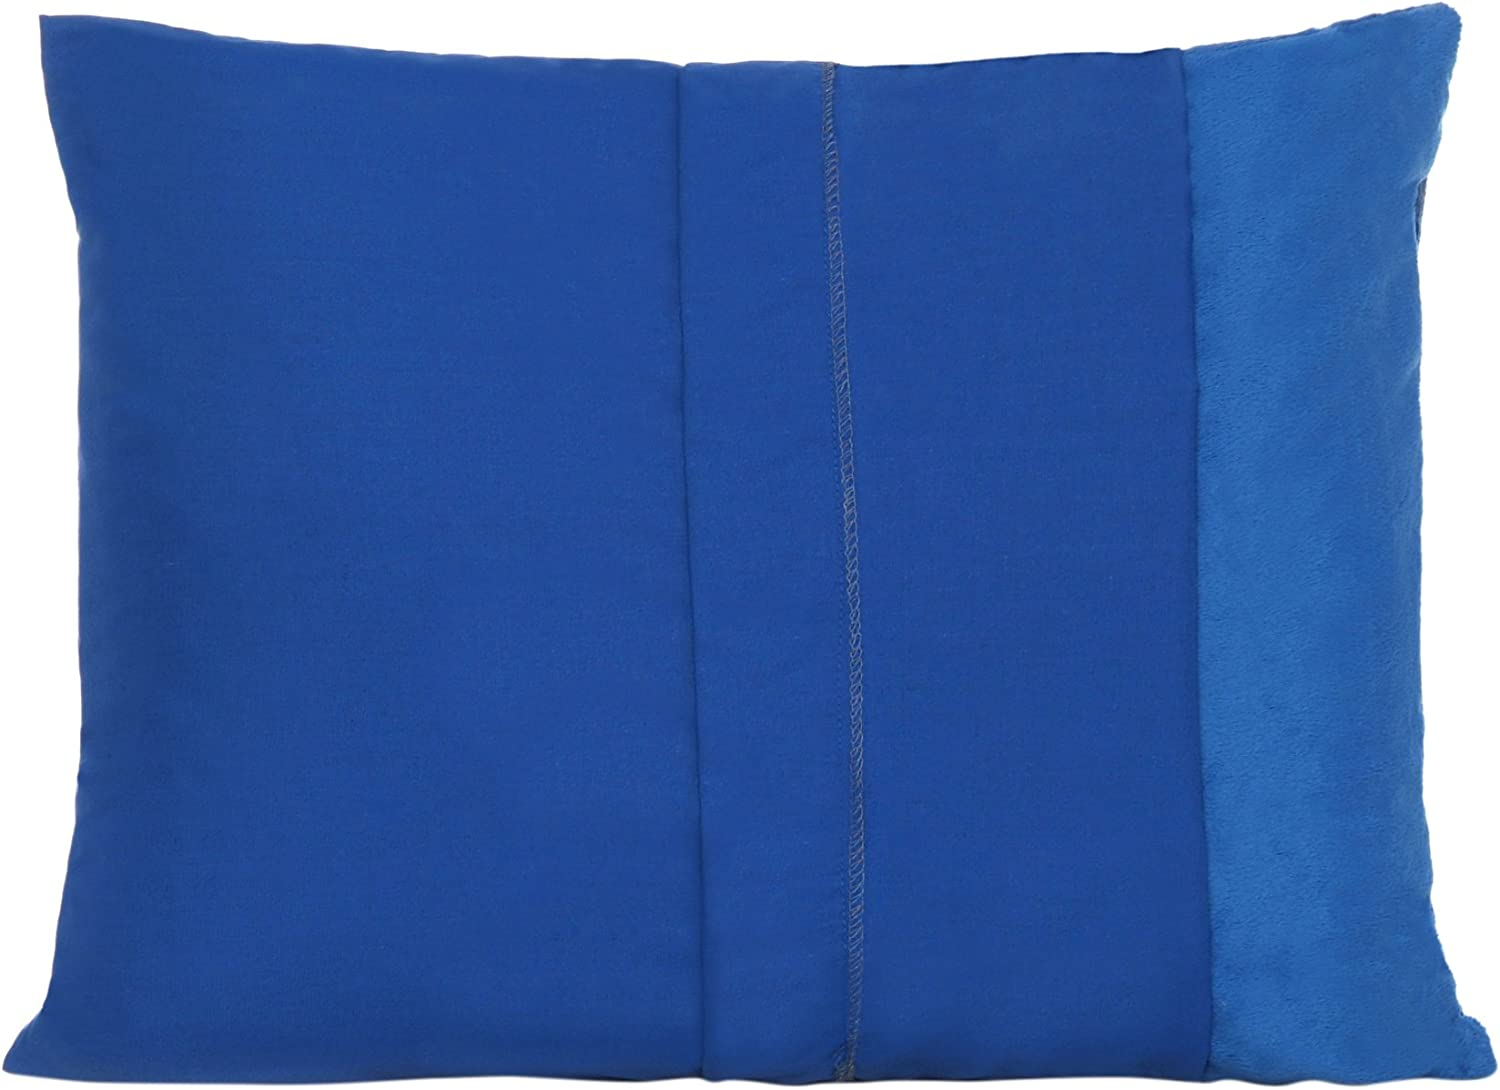 Blue My First Set of Two Youth Pillow Cases